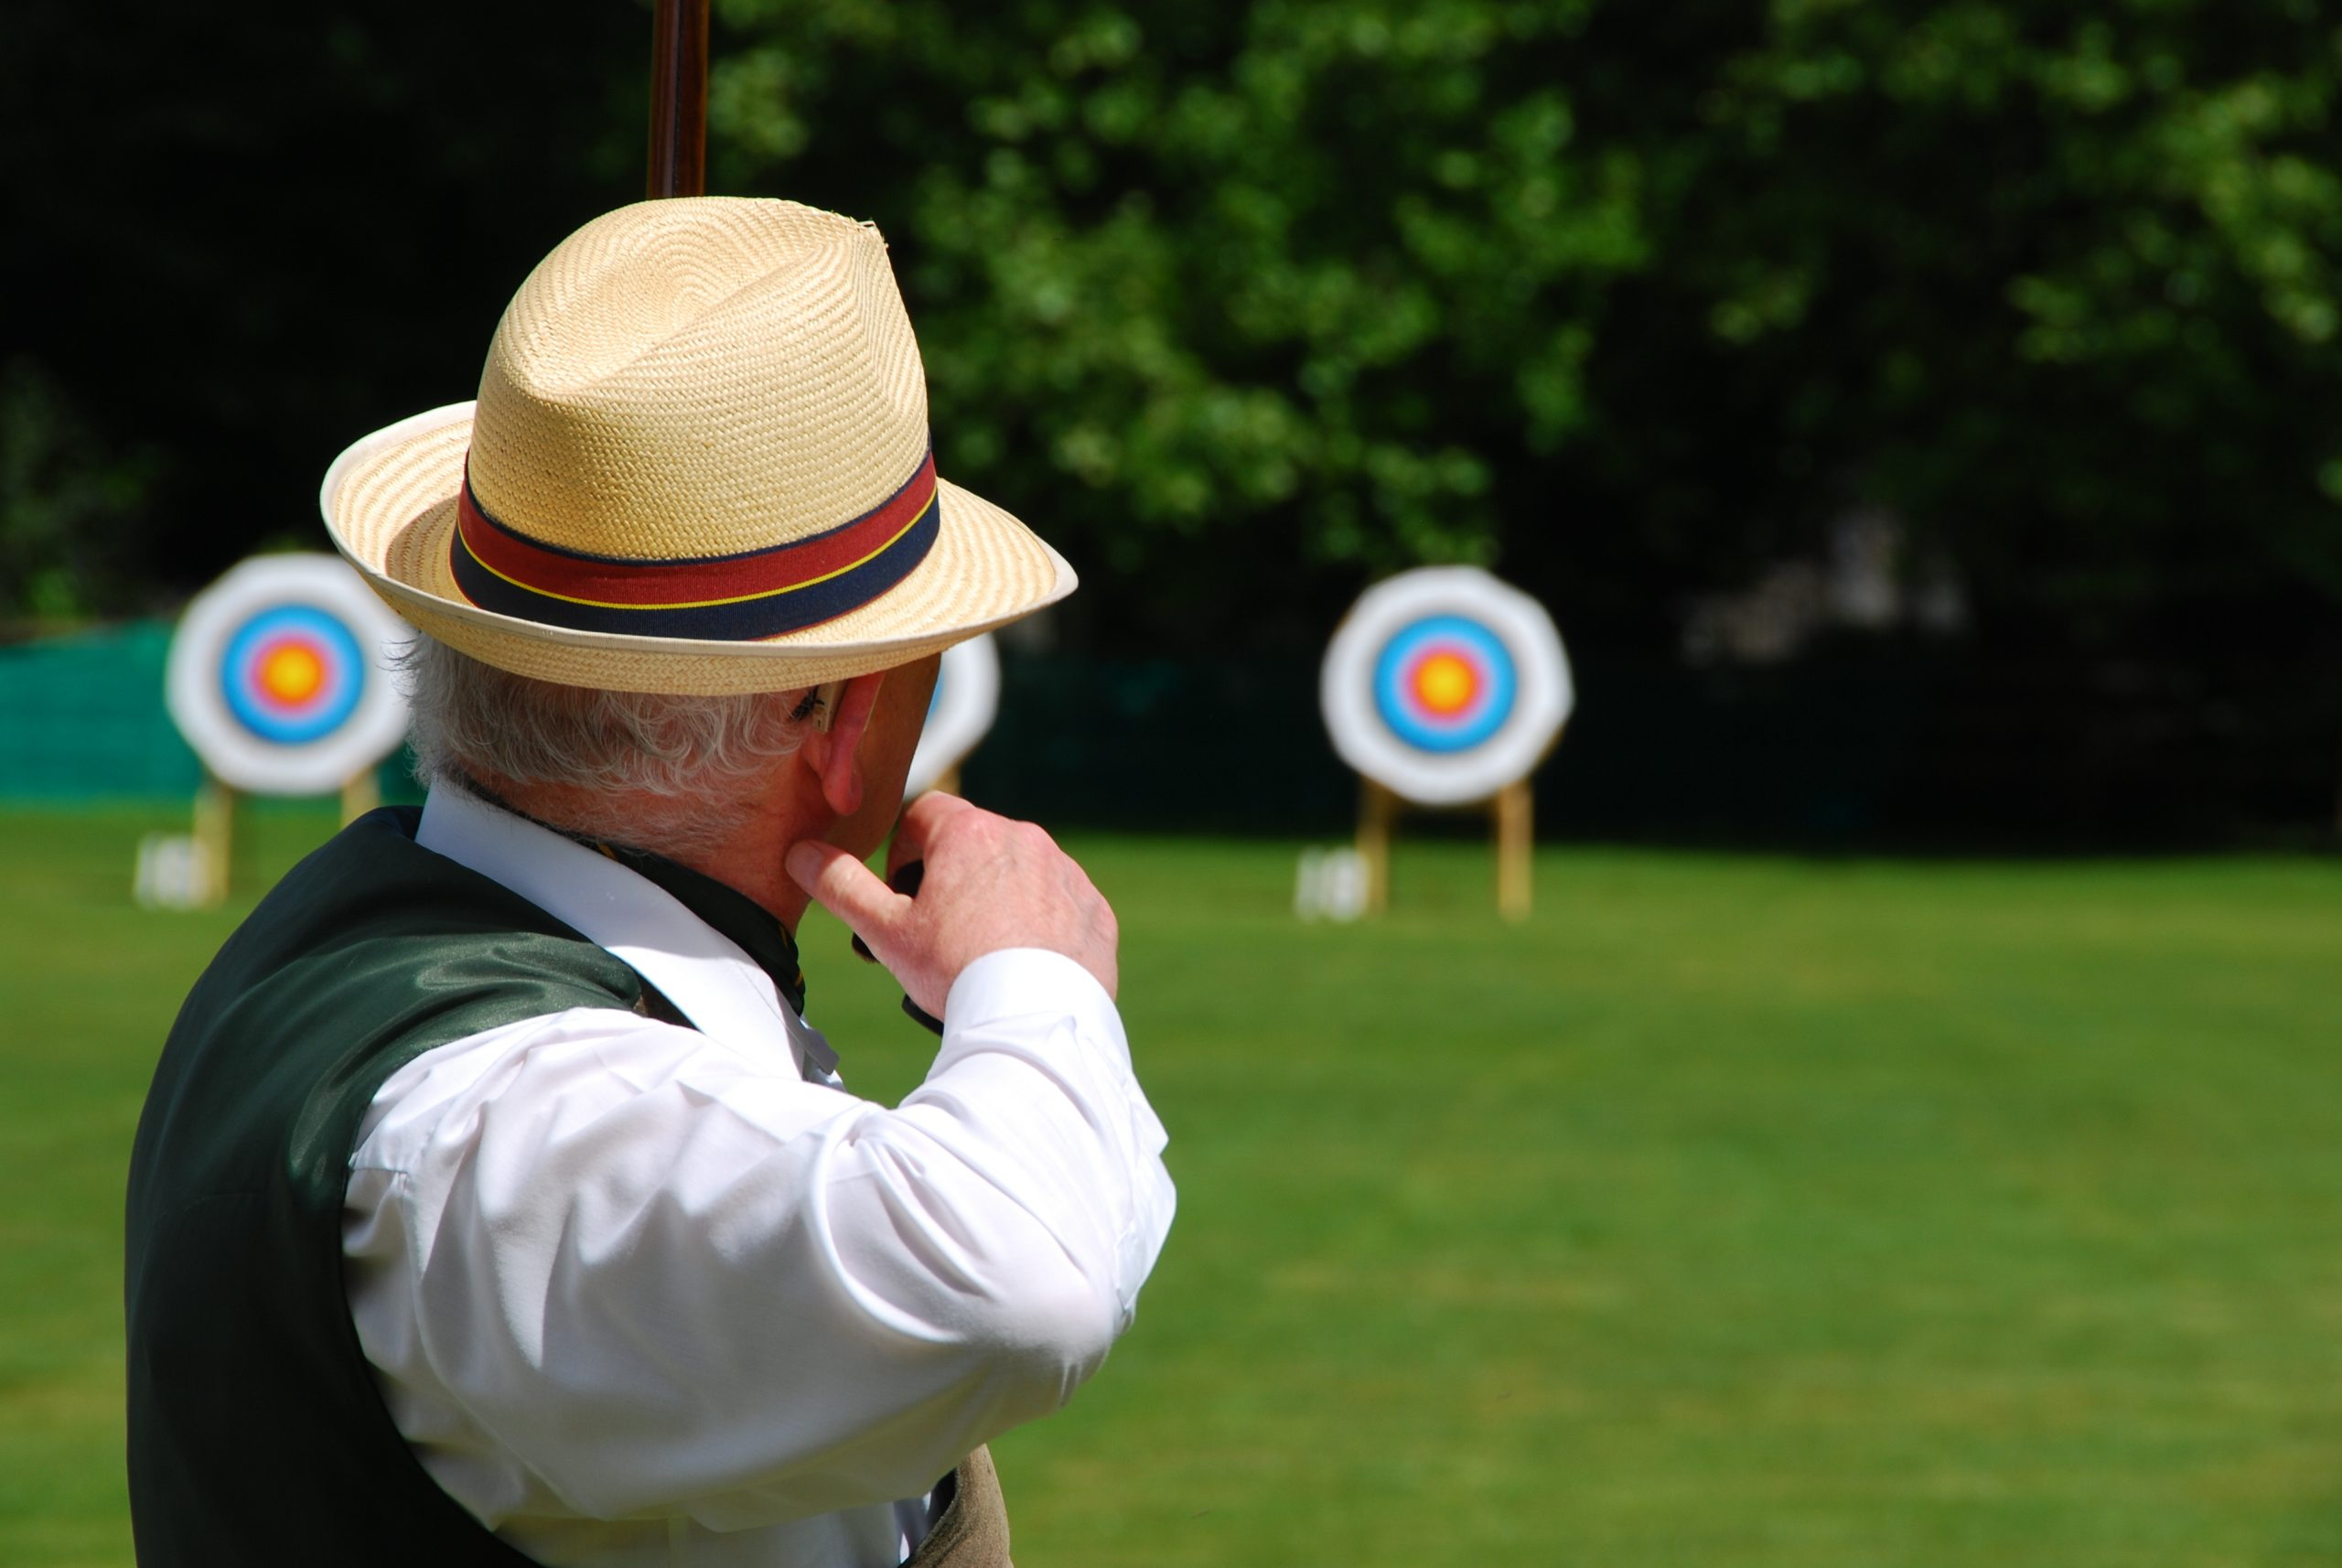 A senior archer hitting the target, Shutterstock